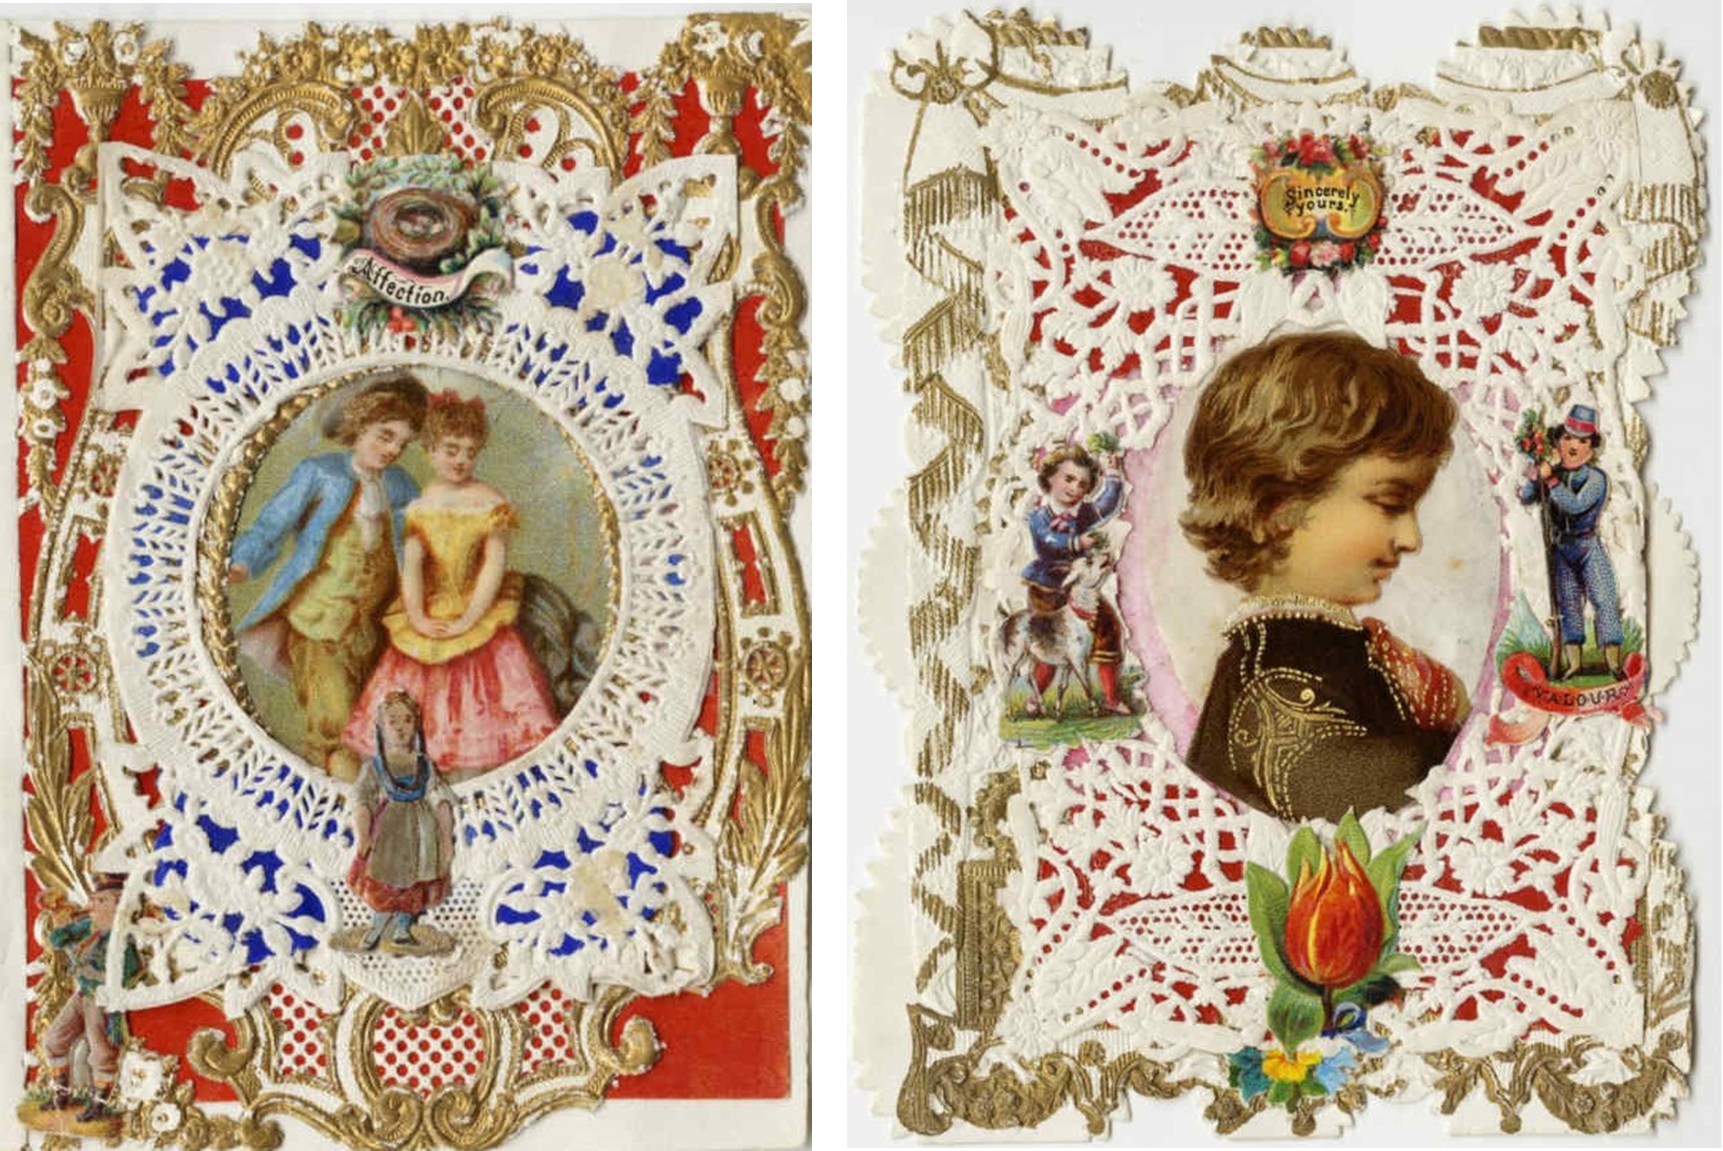 "Left: Image of 19th century valentine card. The red paper is embellished with gold embossing and white lace styling. In the center, an illustration of young man and young woman who lean closely together. Printed across the top, the word ""Affection.""  Right: Image of 19th century valentine card. The red paper is embellished with gold embossing and white lace styling. In the center, an illustration of the profile of a boy who is flanked by smaller illustrations of a boy feeding a goat (left) and a young soldier (right). Printed across the top, the words ""Sincerely Yours."""